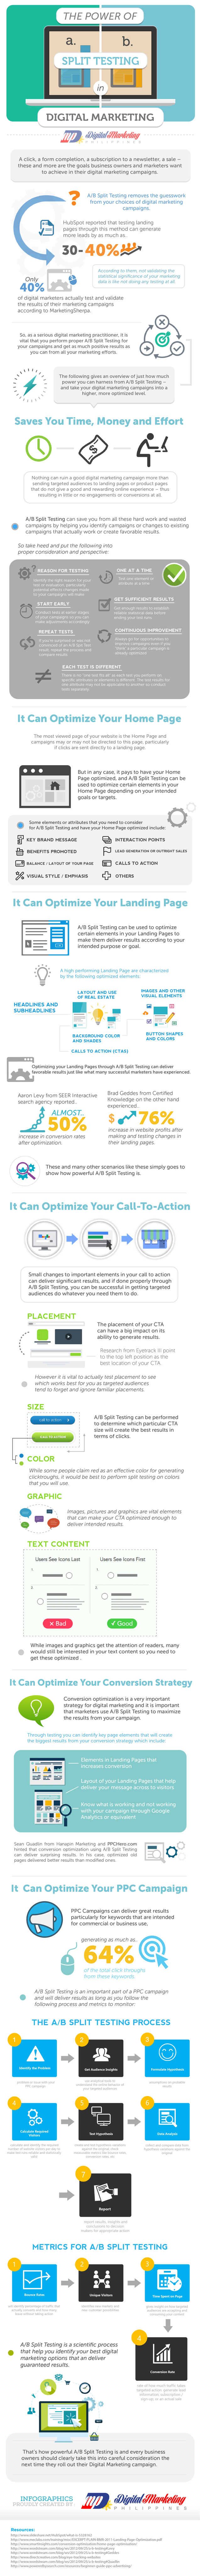 The Power of A/B Split Testing in Digital Marketing (Infographic) - An Infographic from Digital Marketing Philippines